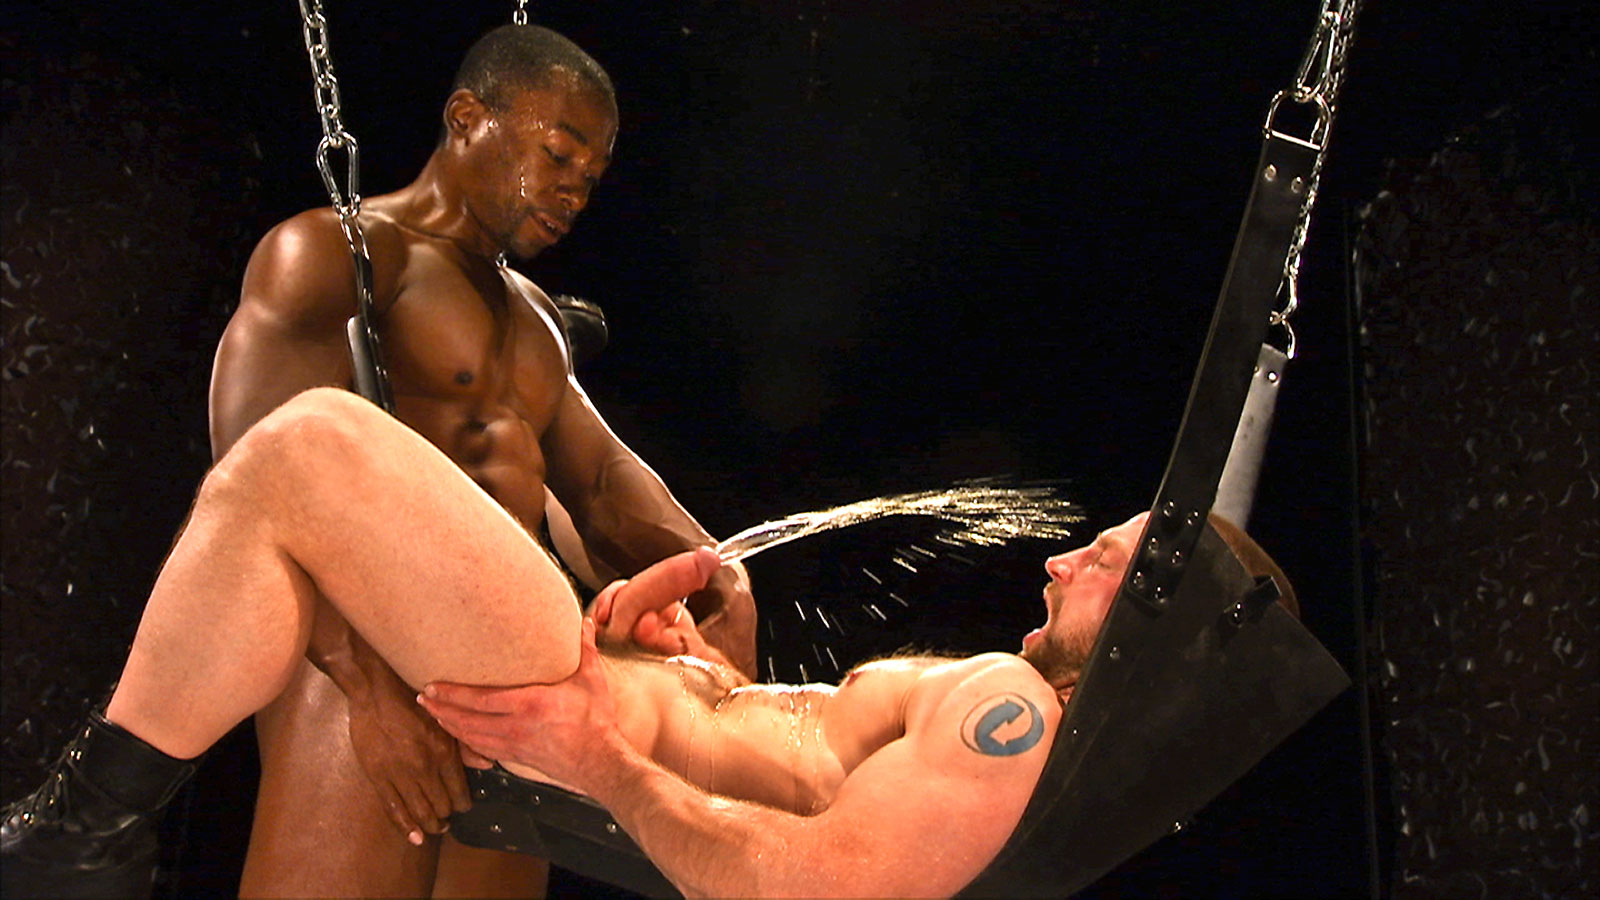 Deven James and Adam Herst - Leather and Piss - Scene 2